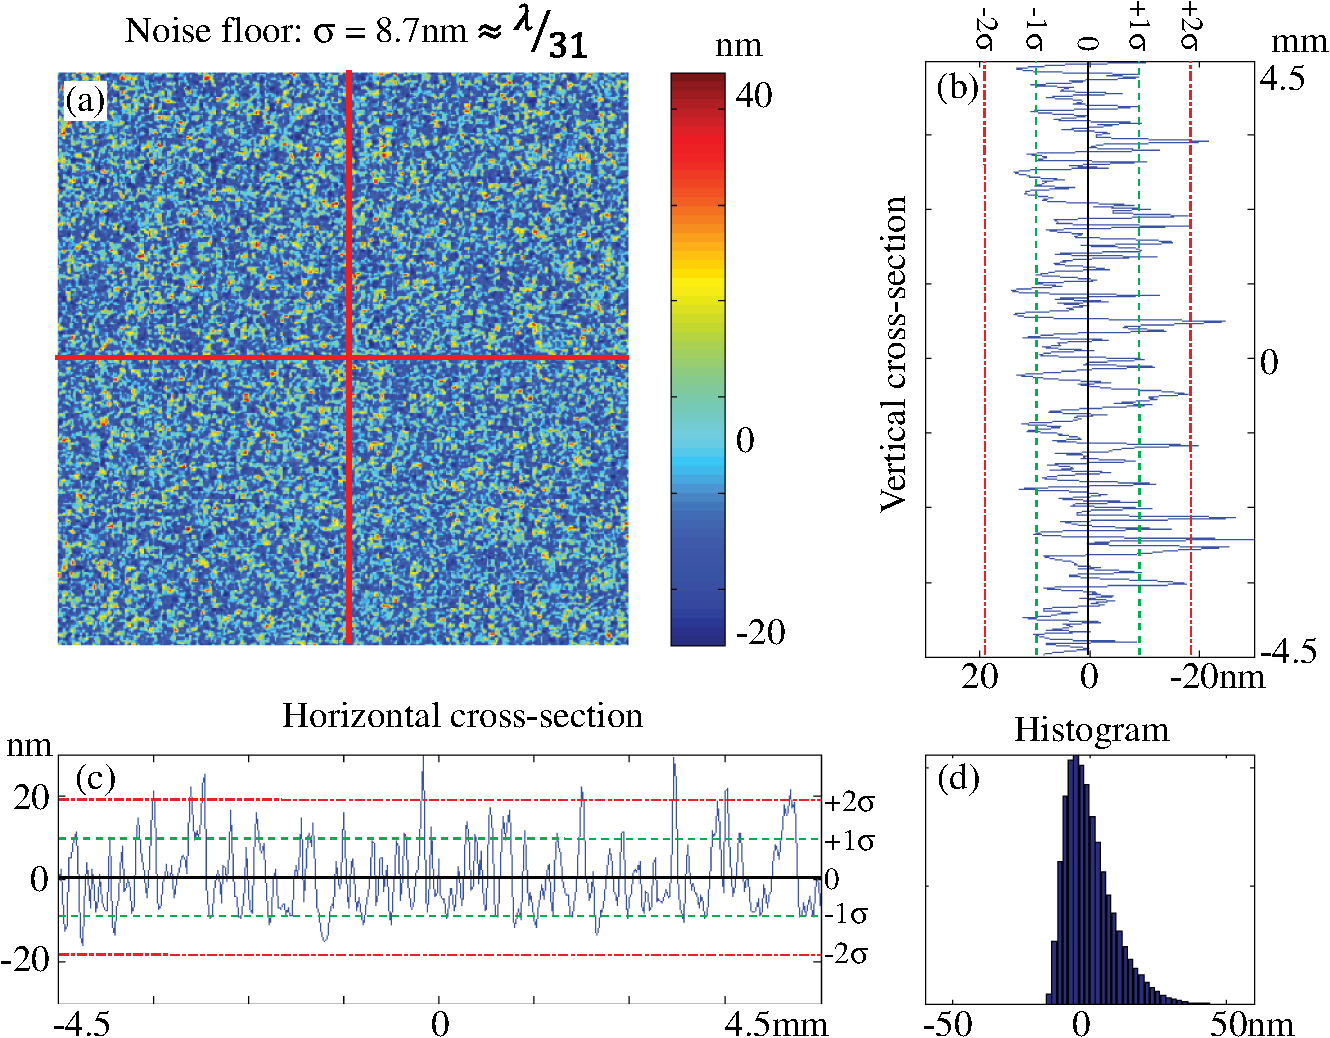 Full-field transient vibrometry of the human tympanic